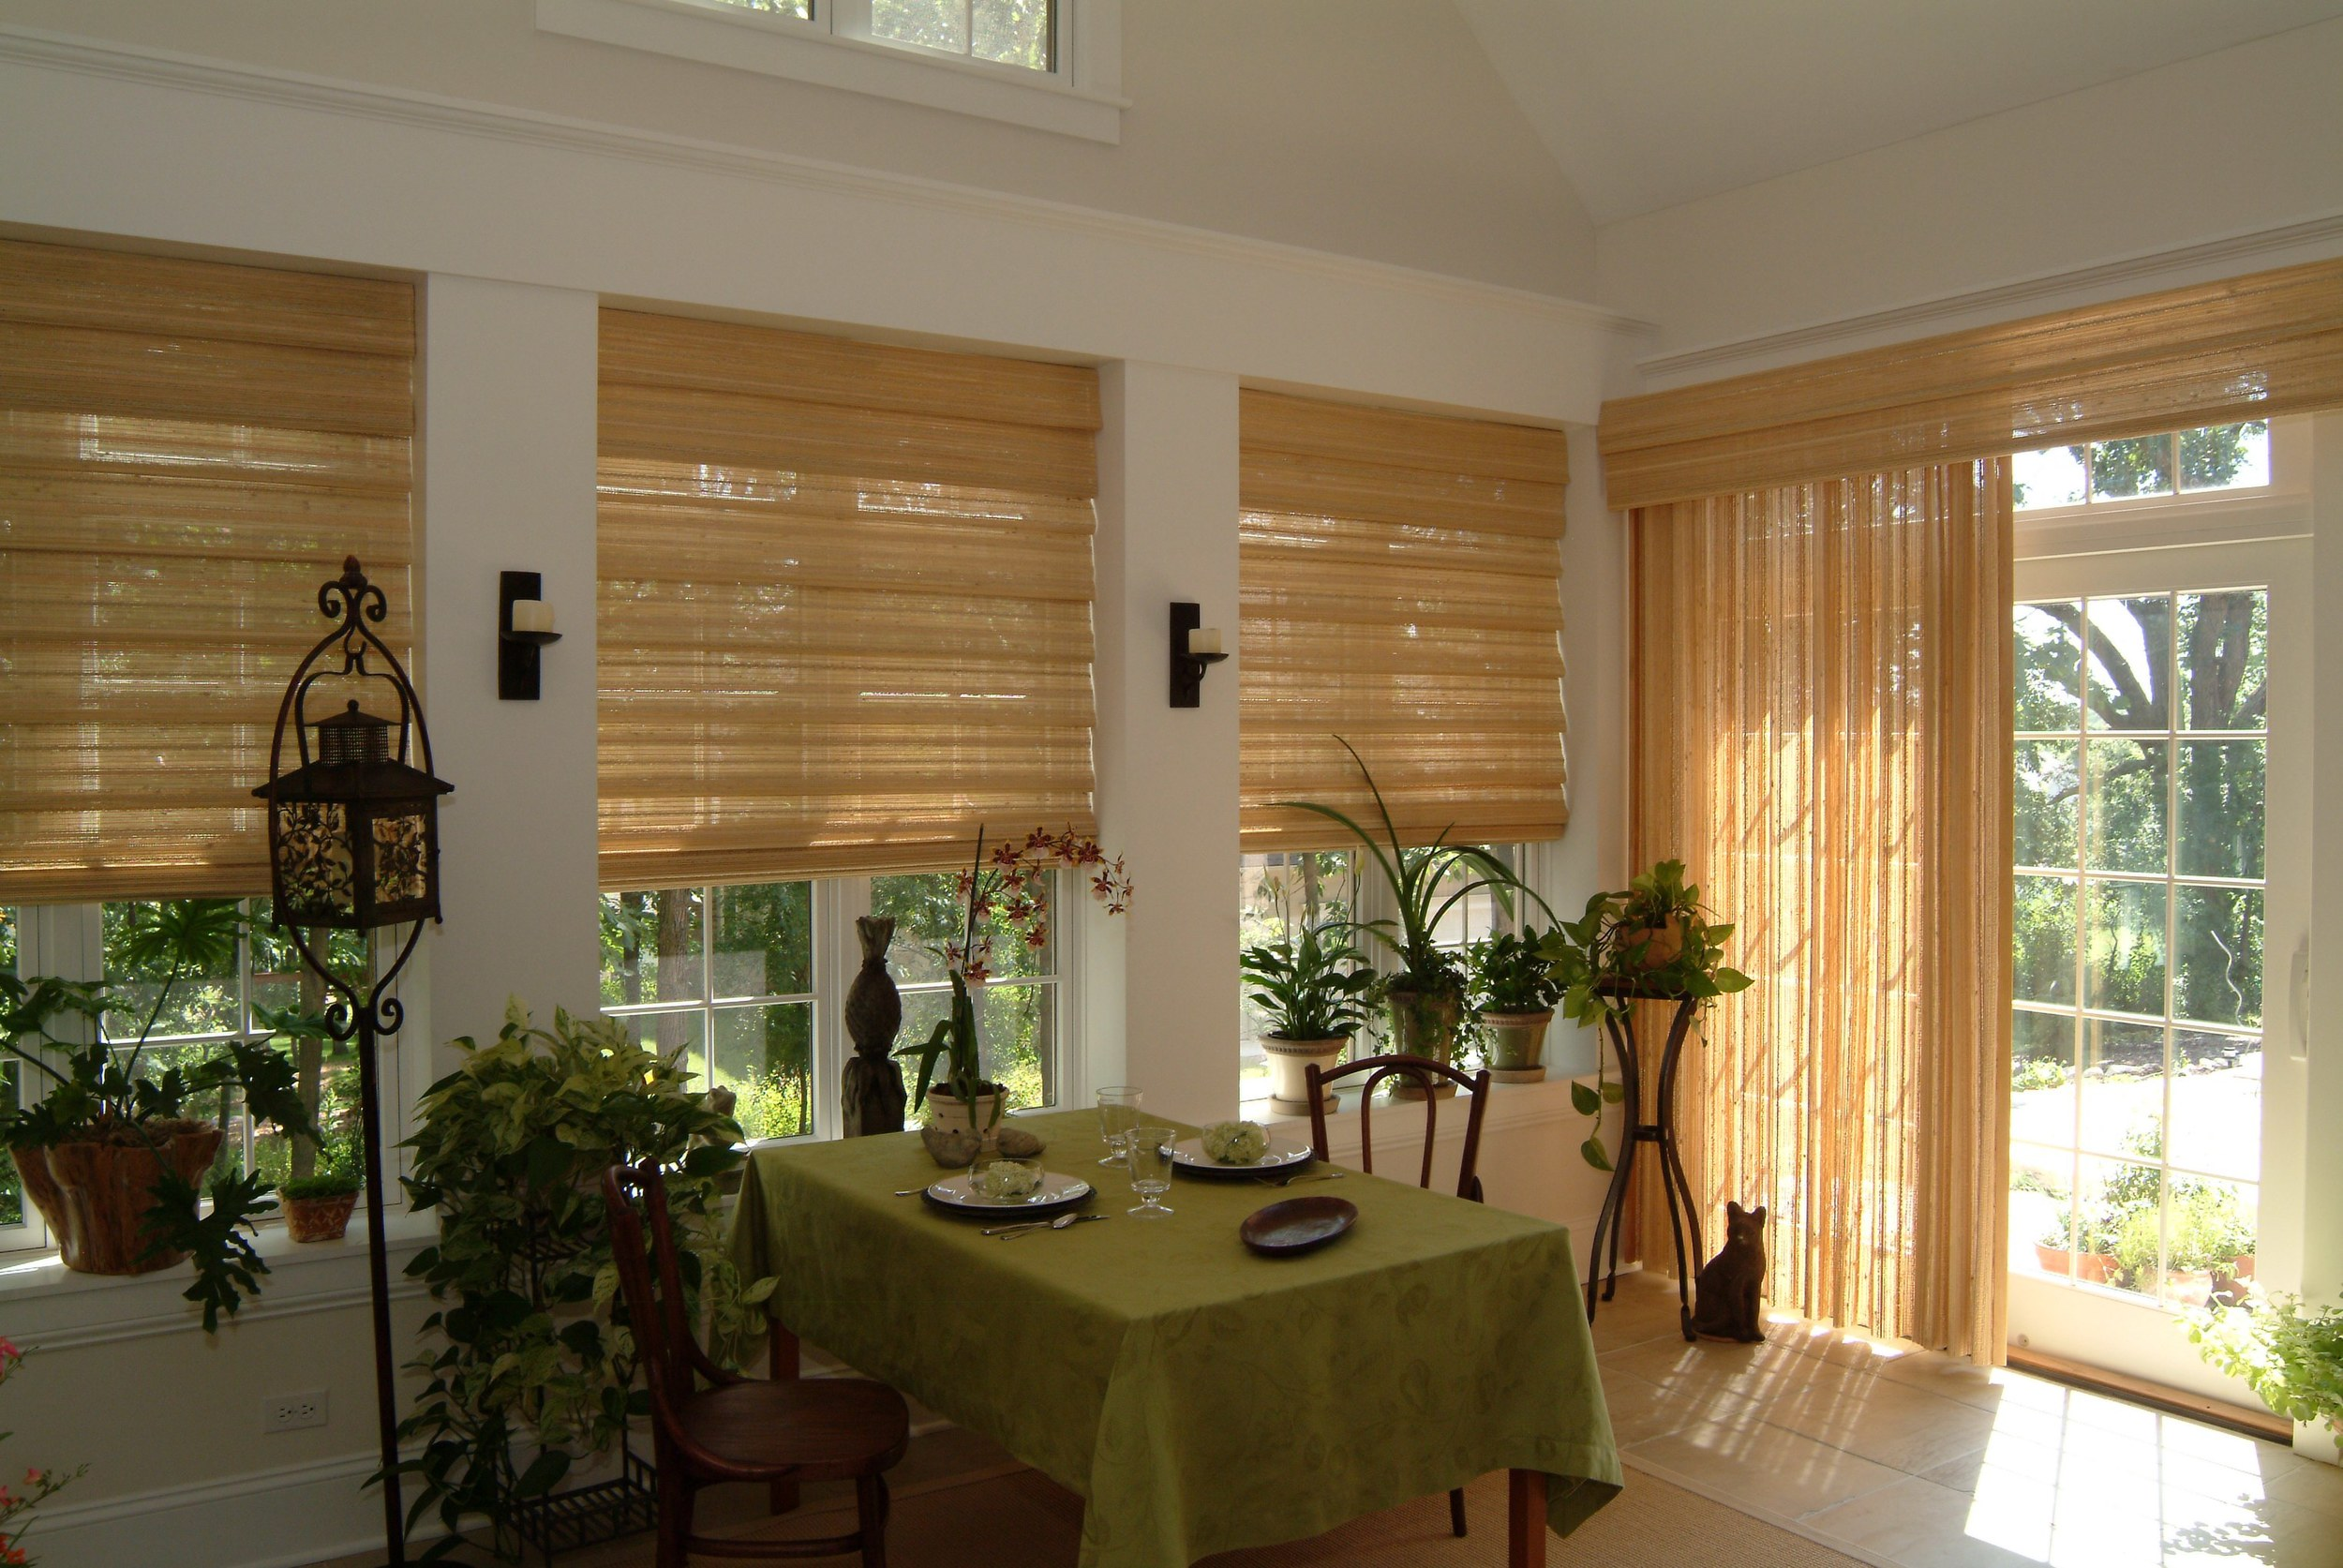 box drapes treatment treatments office draperies pattern fabric shade blinds panel window sittingroom curtains inspiration side roman room soft gallery sitting horizon pleat